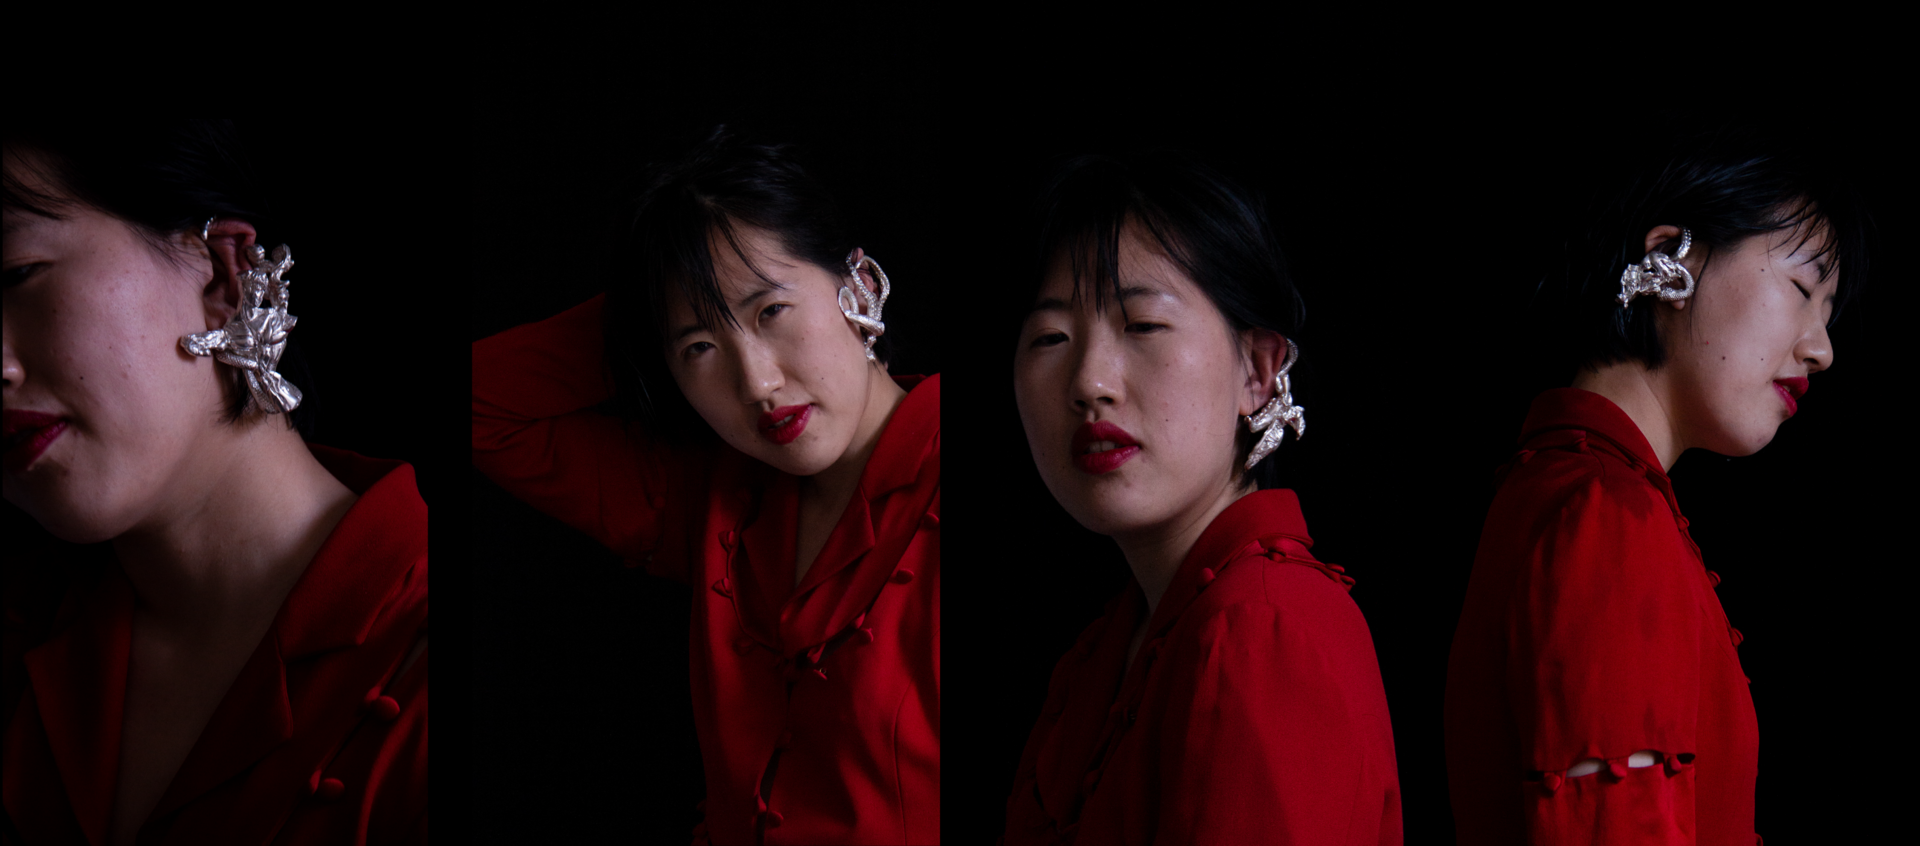 Earring collection relating to the external fear